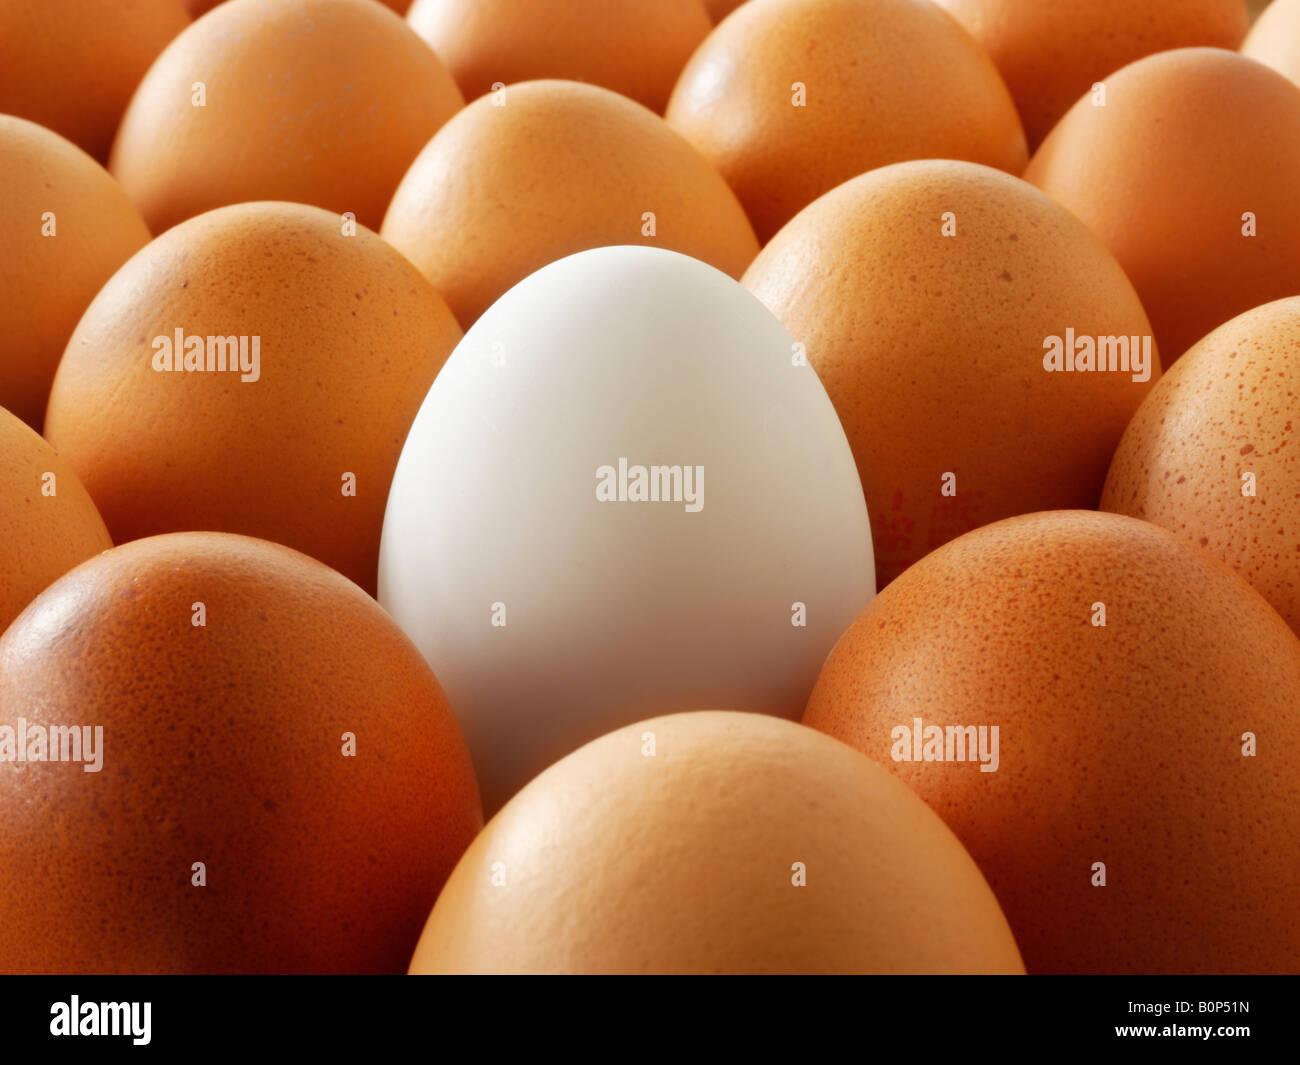 Close up of  eggs. Brown eggs with one white duck egg. - Stock Image